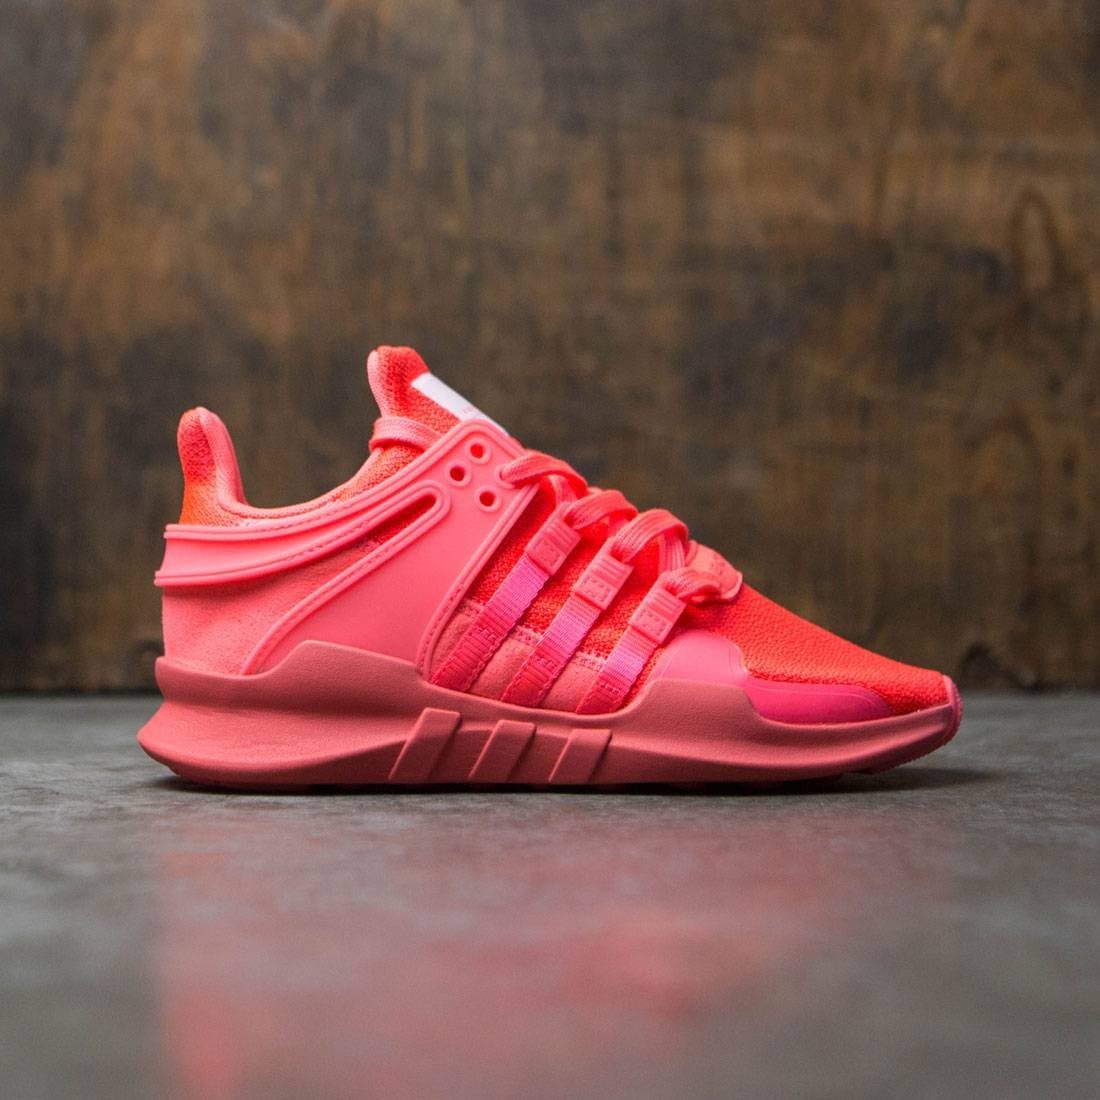 the best attitude 38491 48c21 adidas eqt pink, Adidas Originals Eqt Shoes Casual Adidas ...